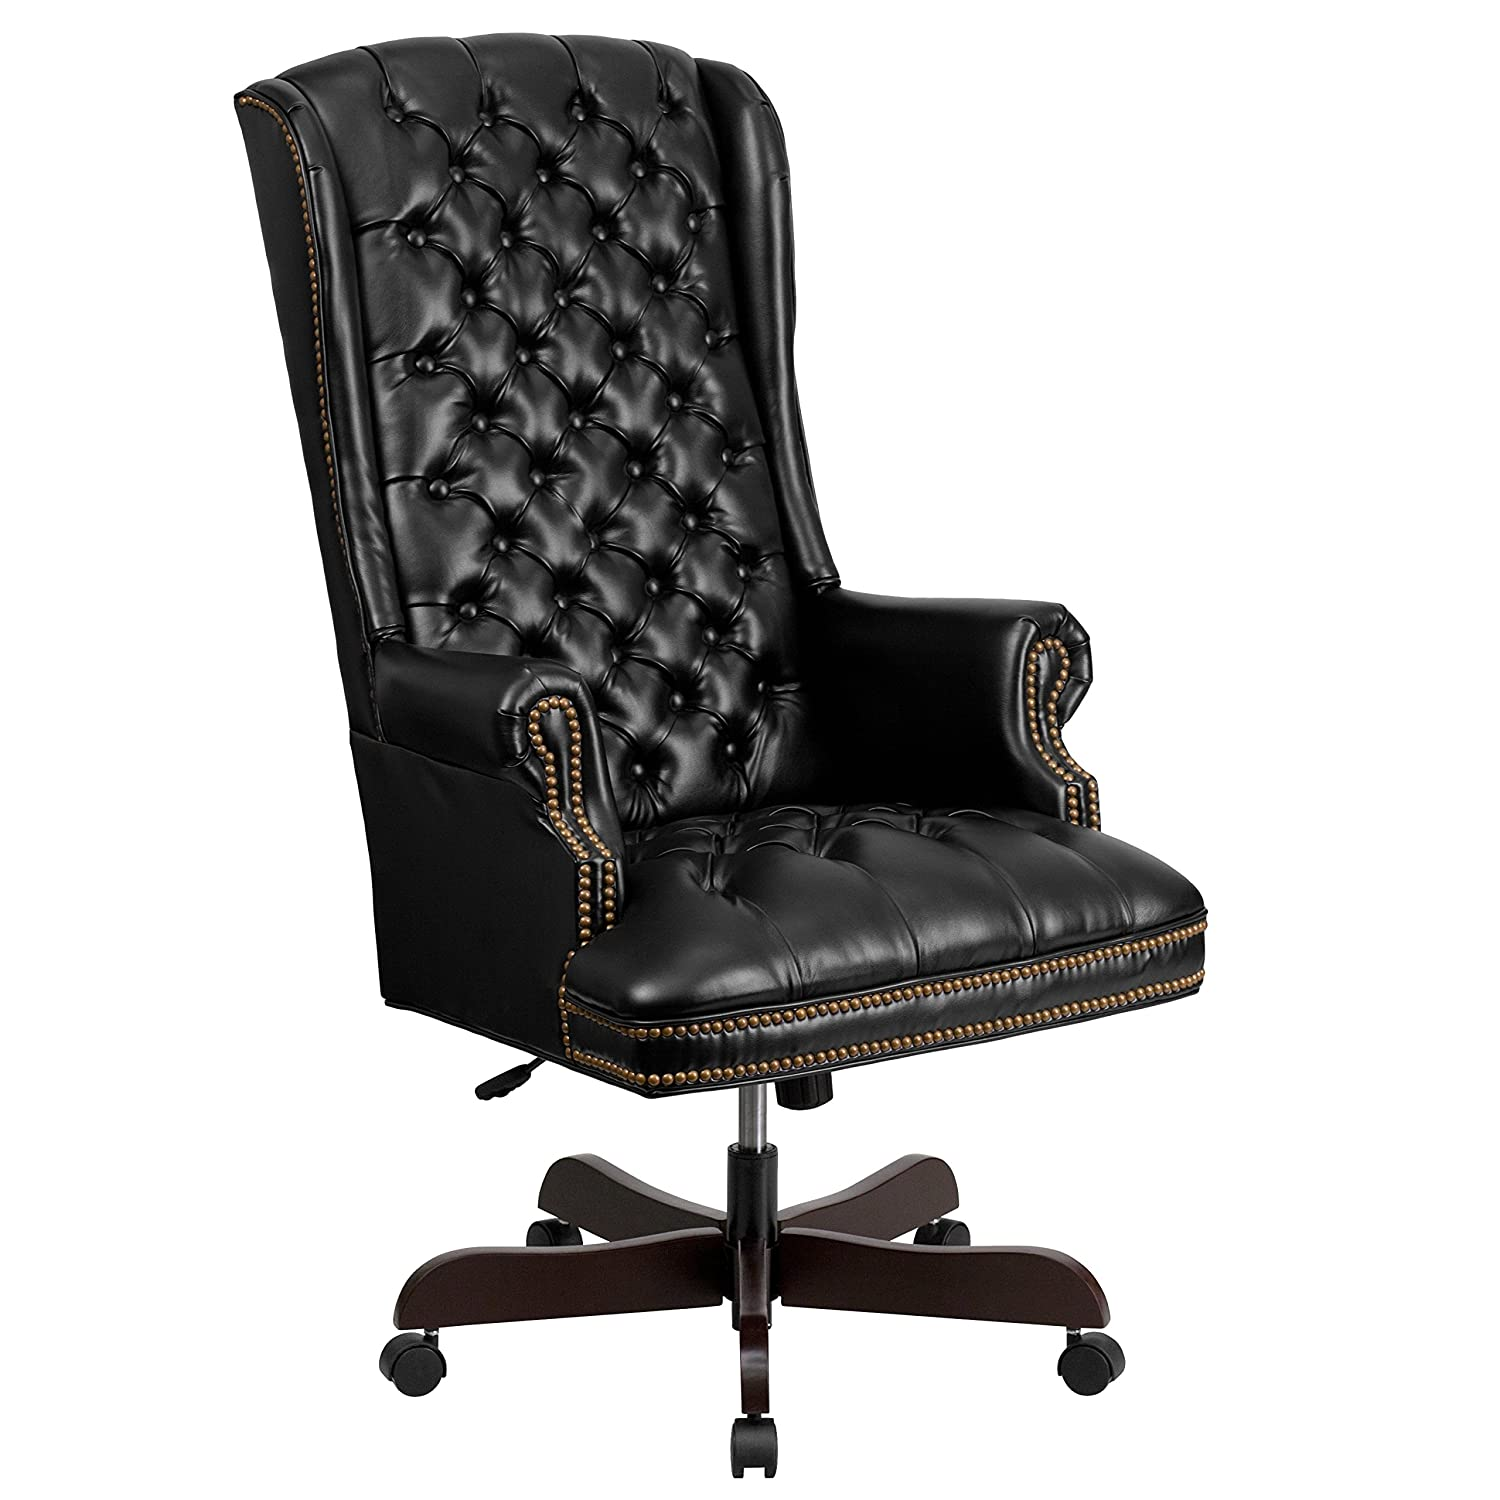 chairs chr over santoro leather chair product lr zoom black image roll to